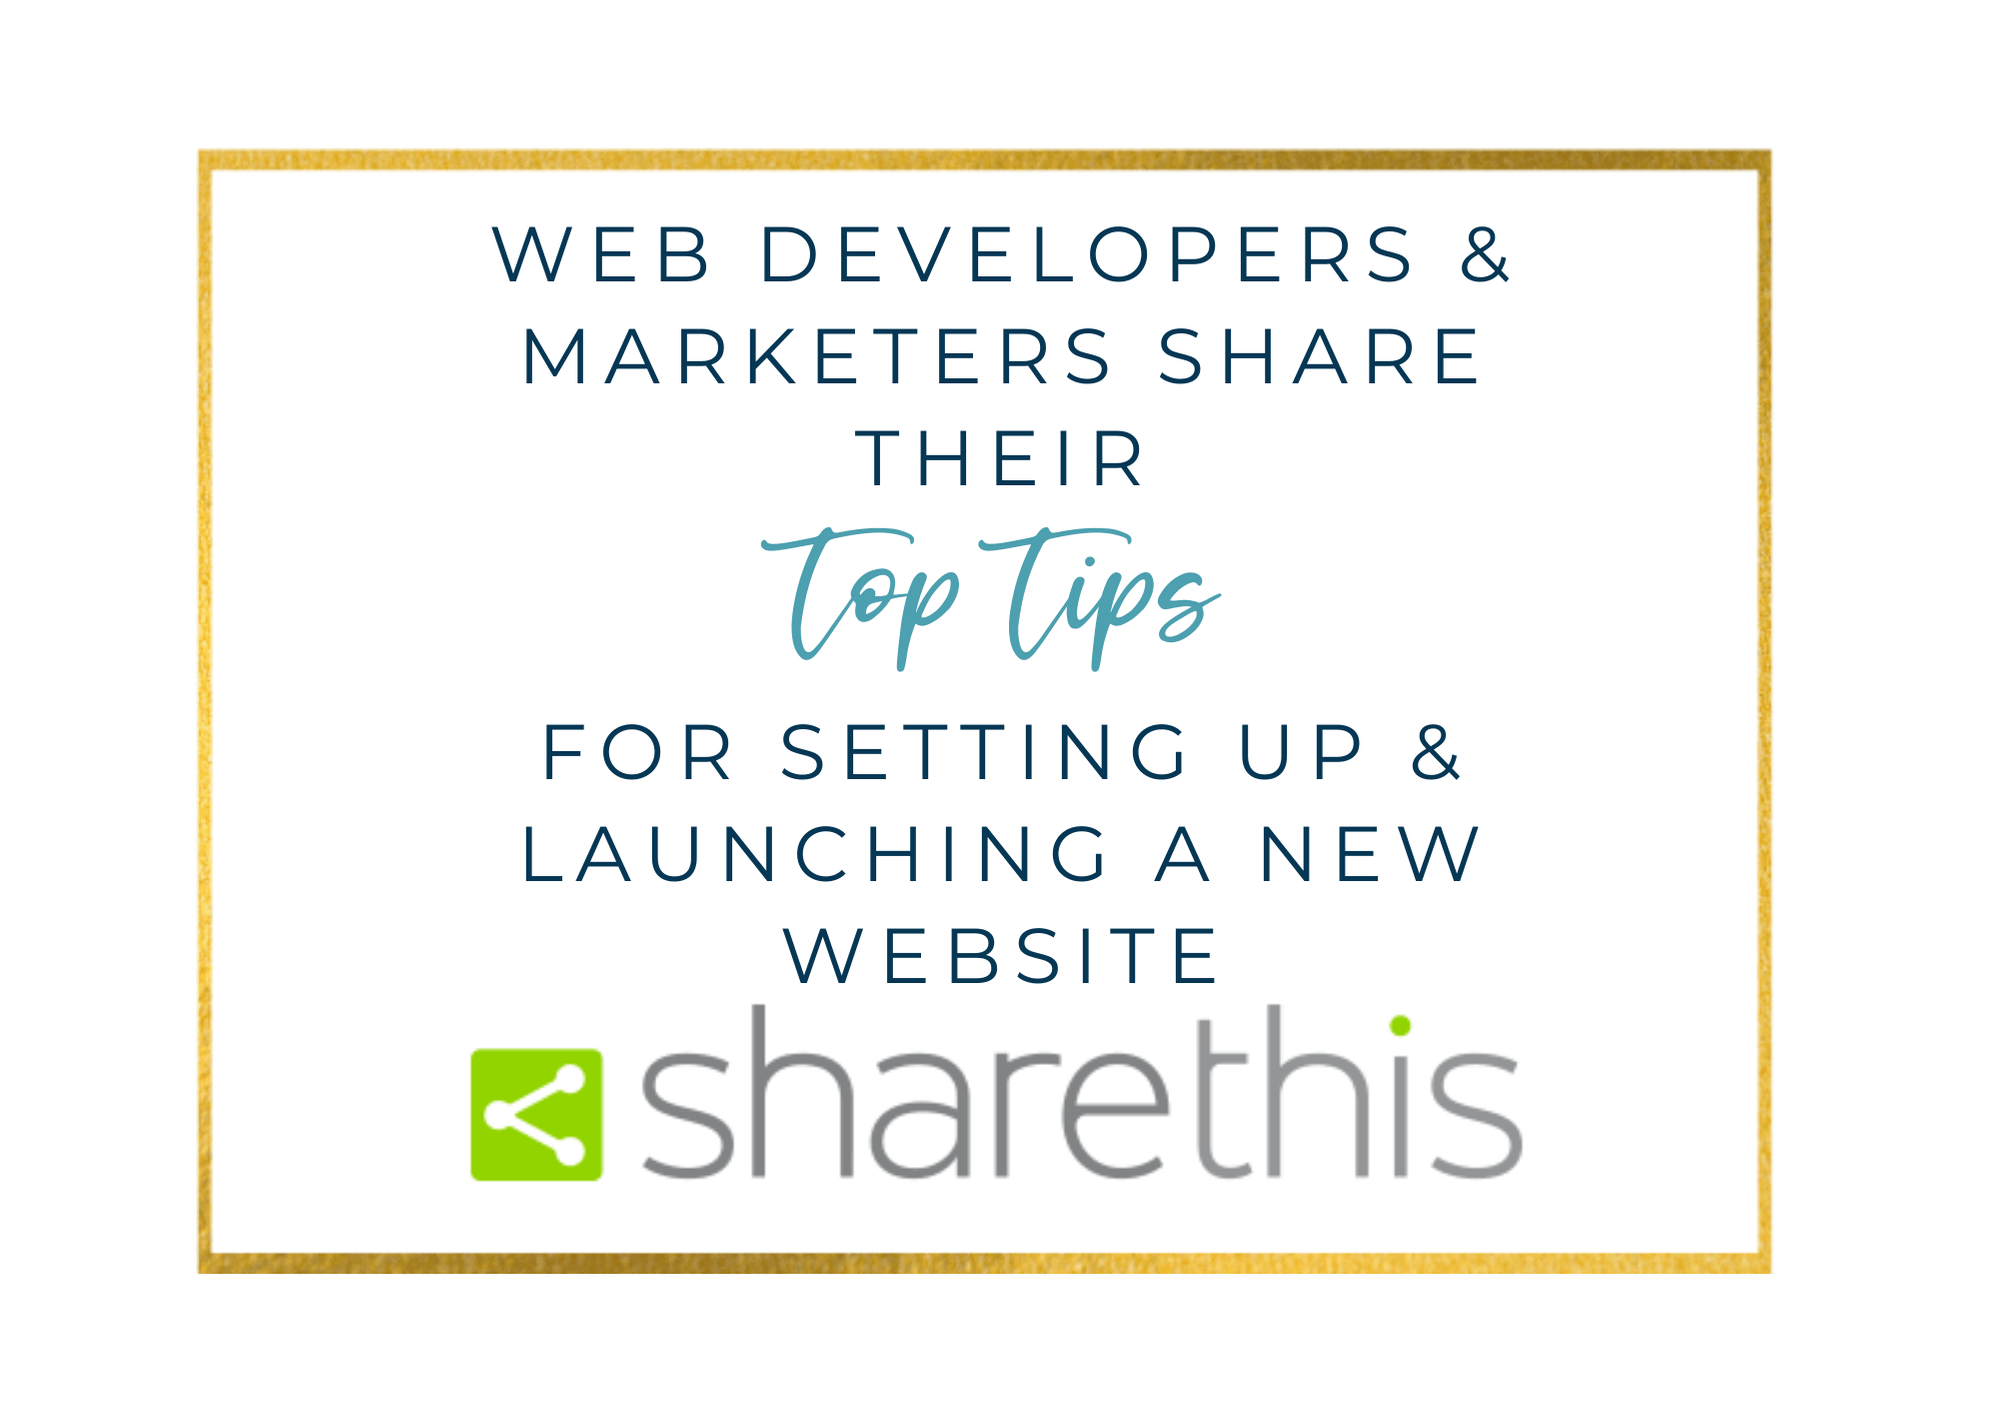 24 Web Developers & Marketers Share Their Top Tips for Setting Up & Launching a New Website